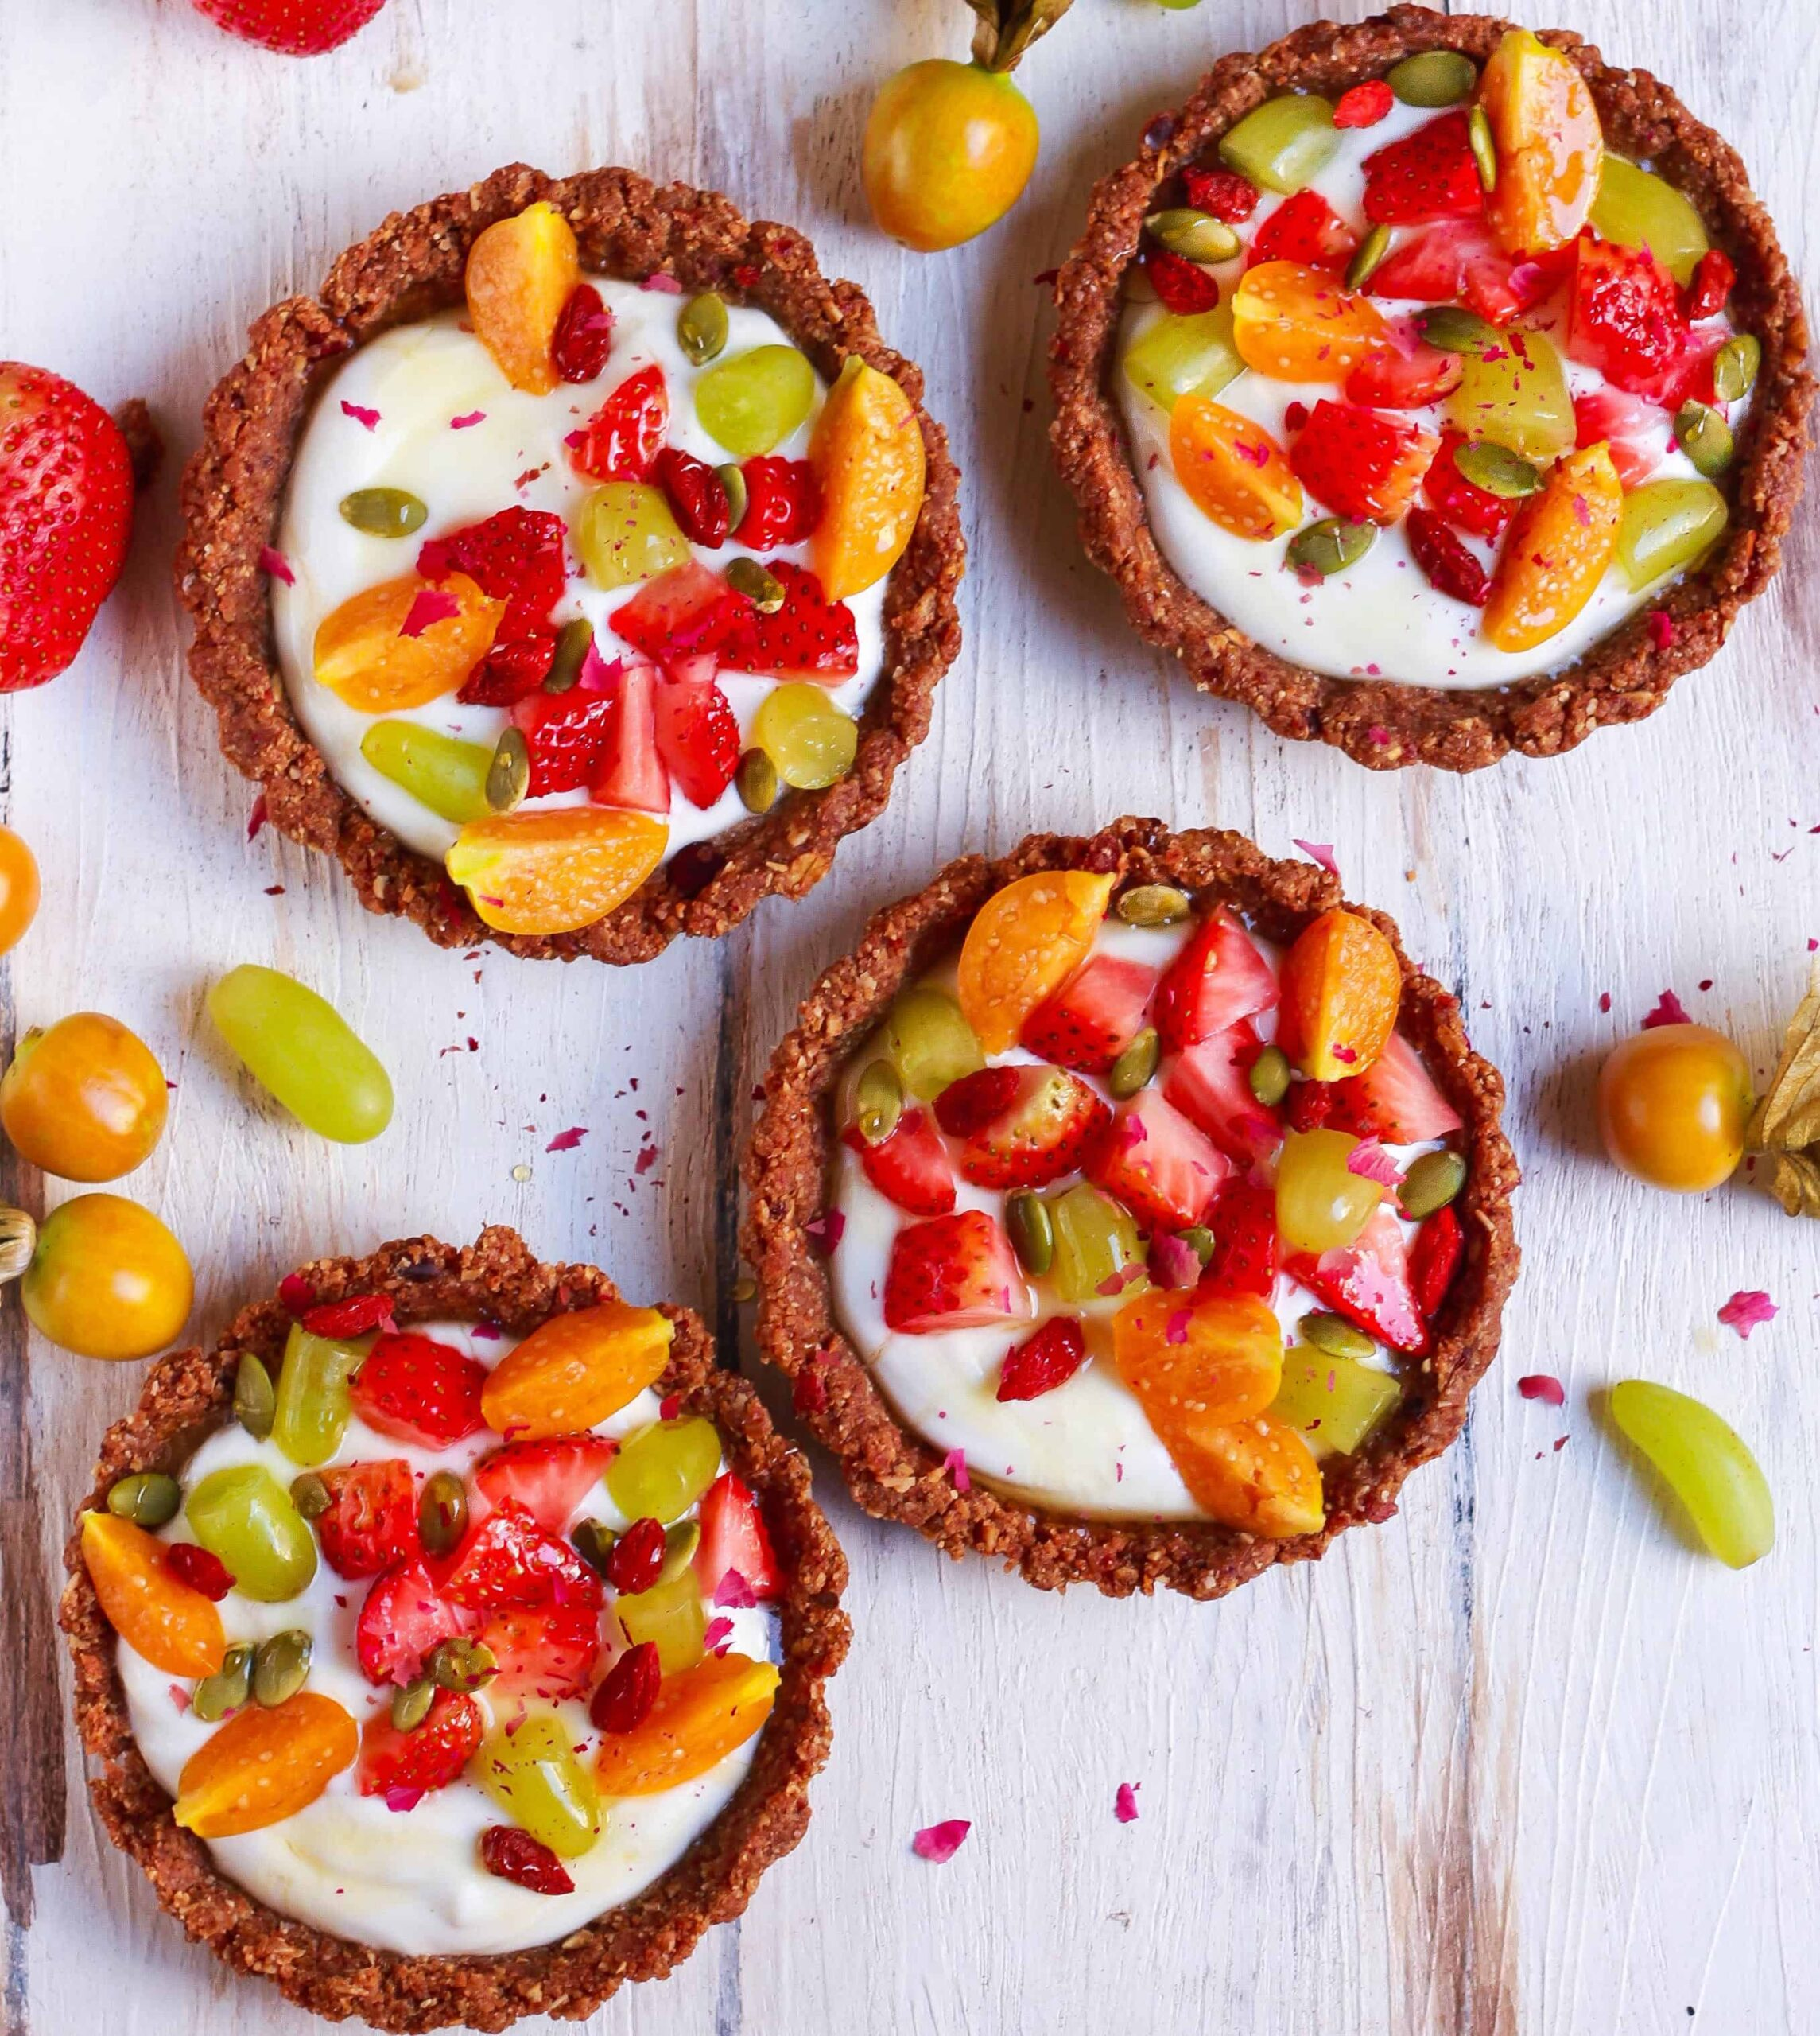 Breakfast Granola Tarts easy no bake healthy recipe vegetarian vegan friendly